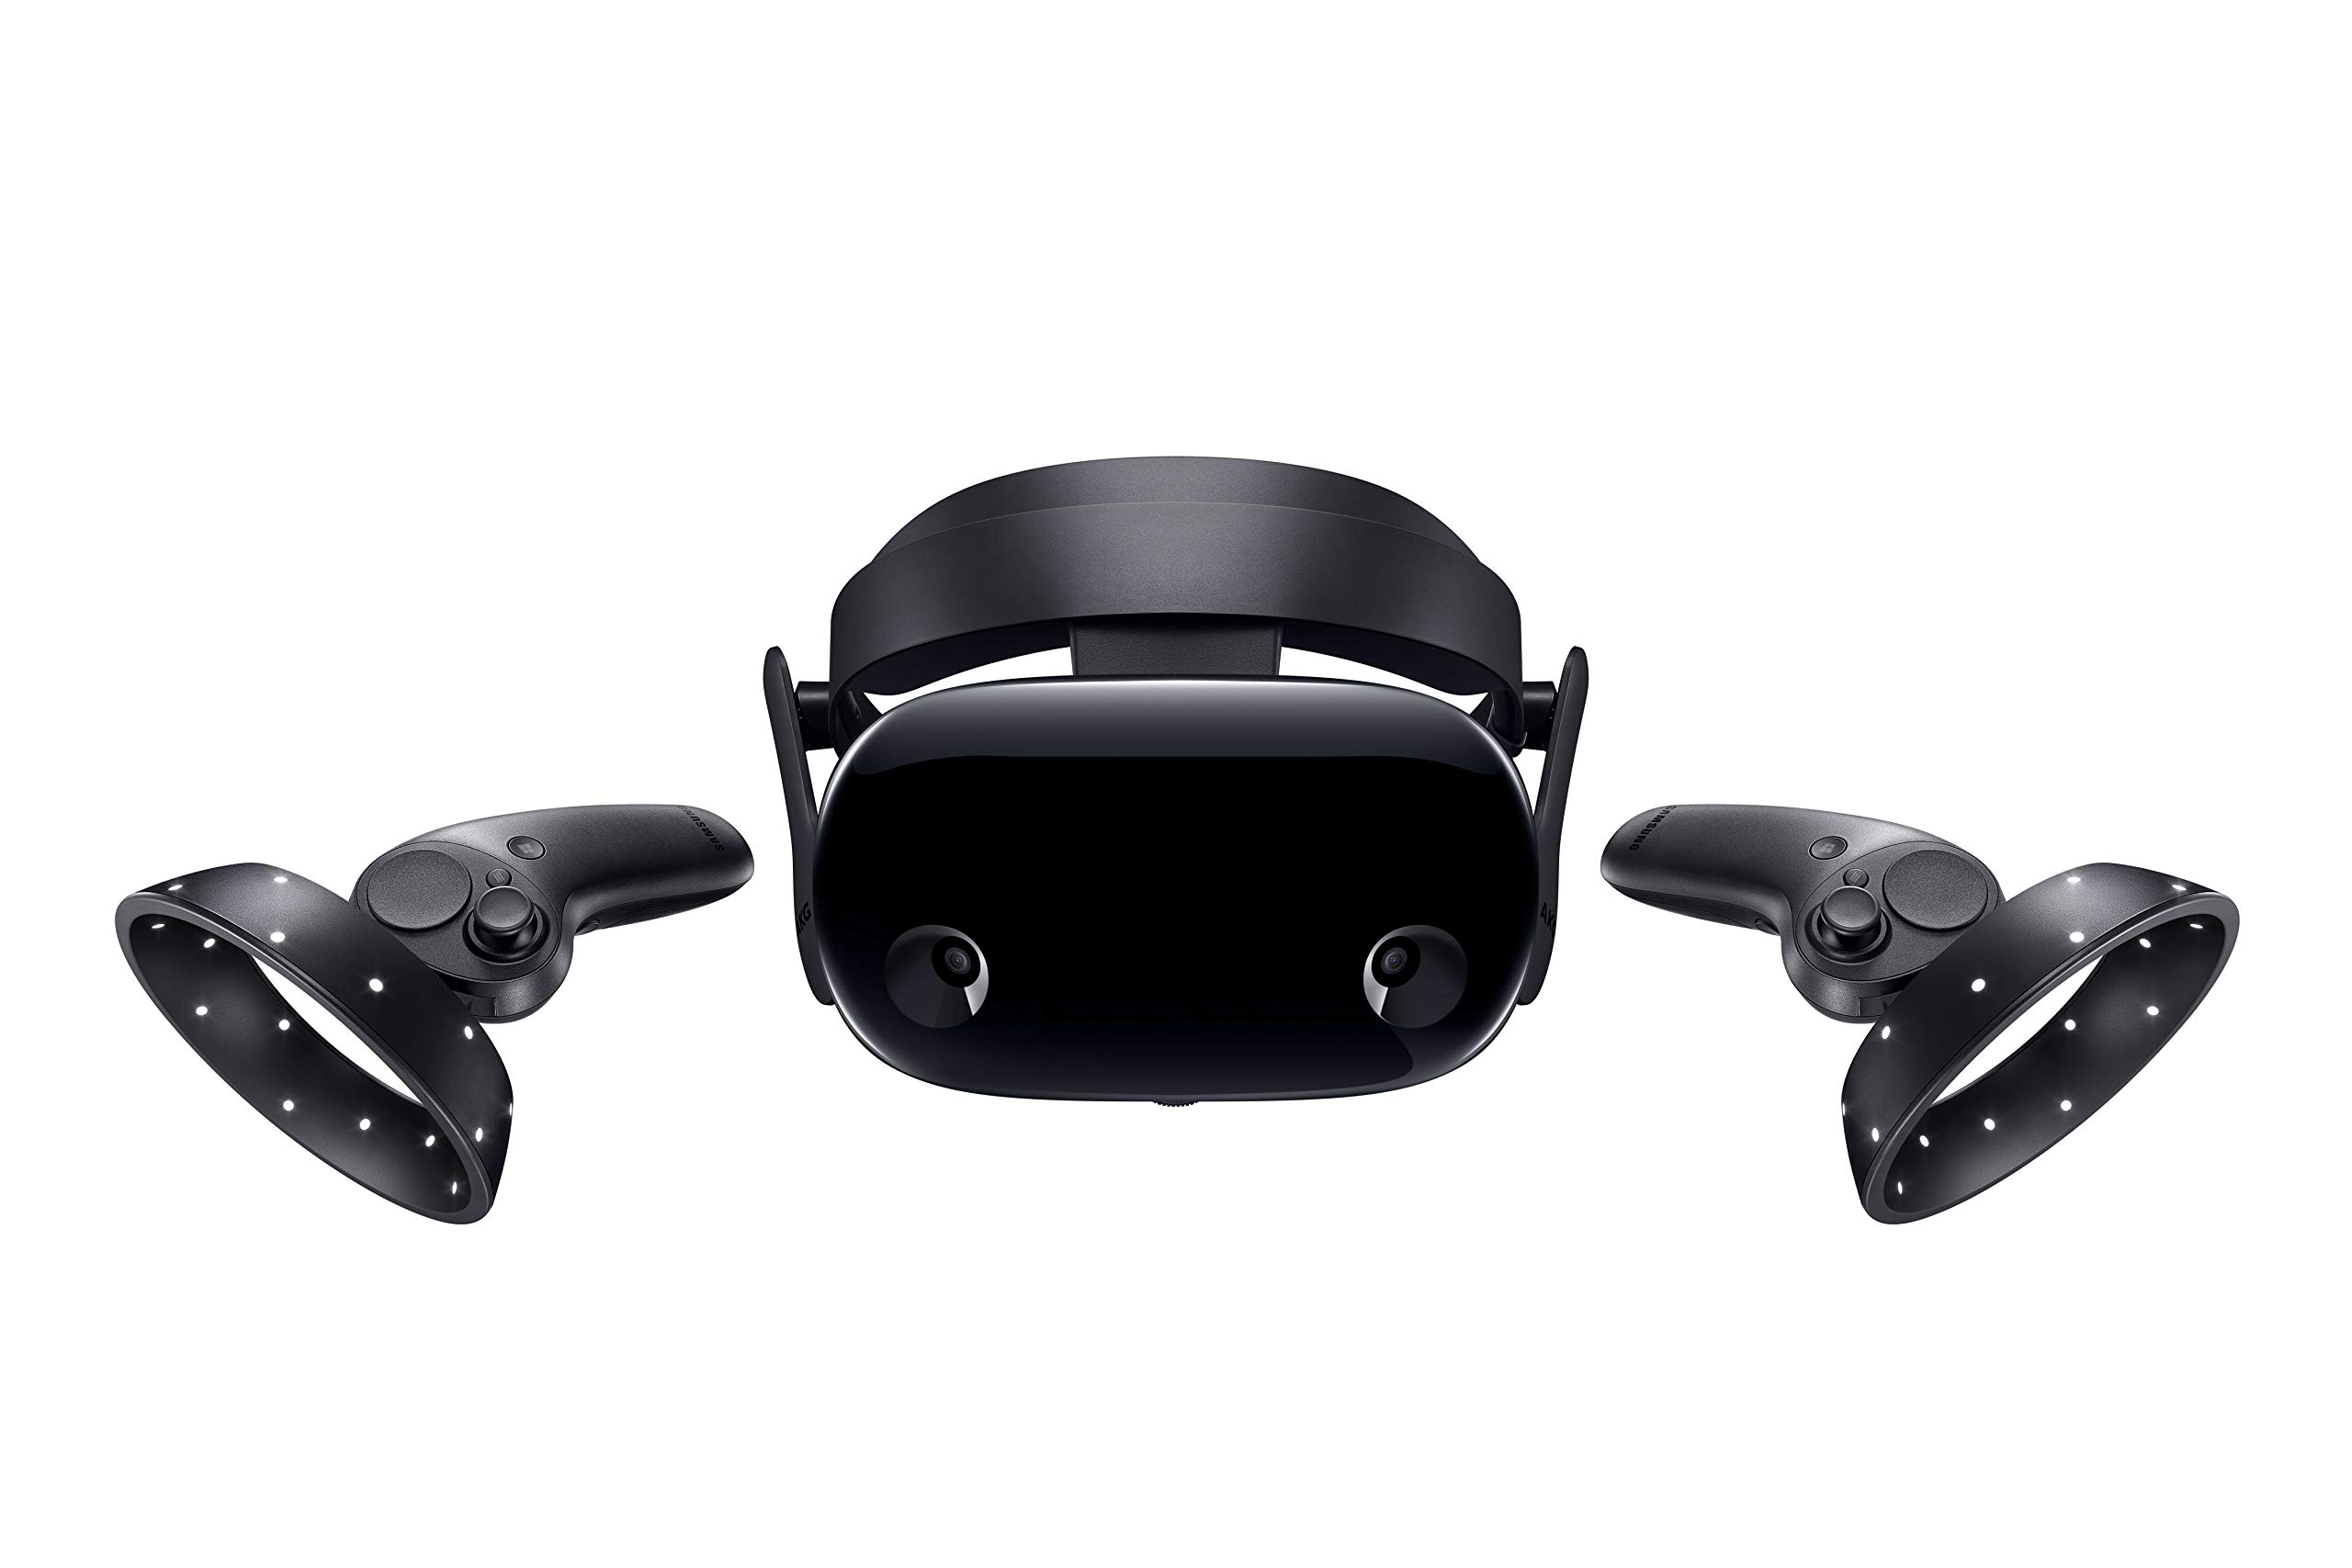 Samsung Electronics HMD Odyssey+ Windows Mixed Reality Headset with 2 Wireless Controllers 3.5'' Black (XE800ZBA-HC1US) by Samsung